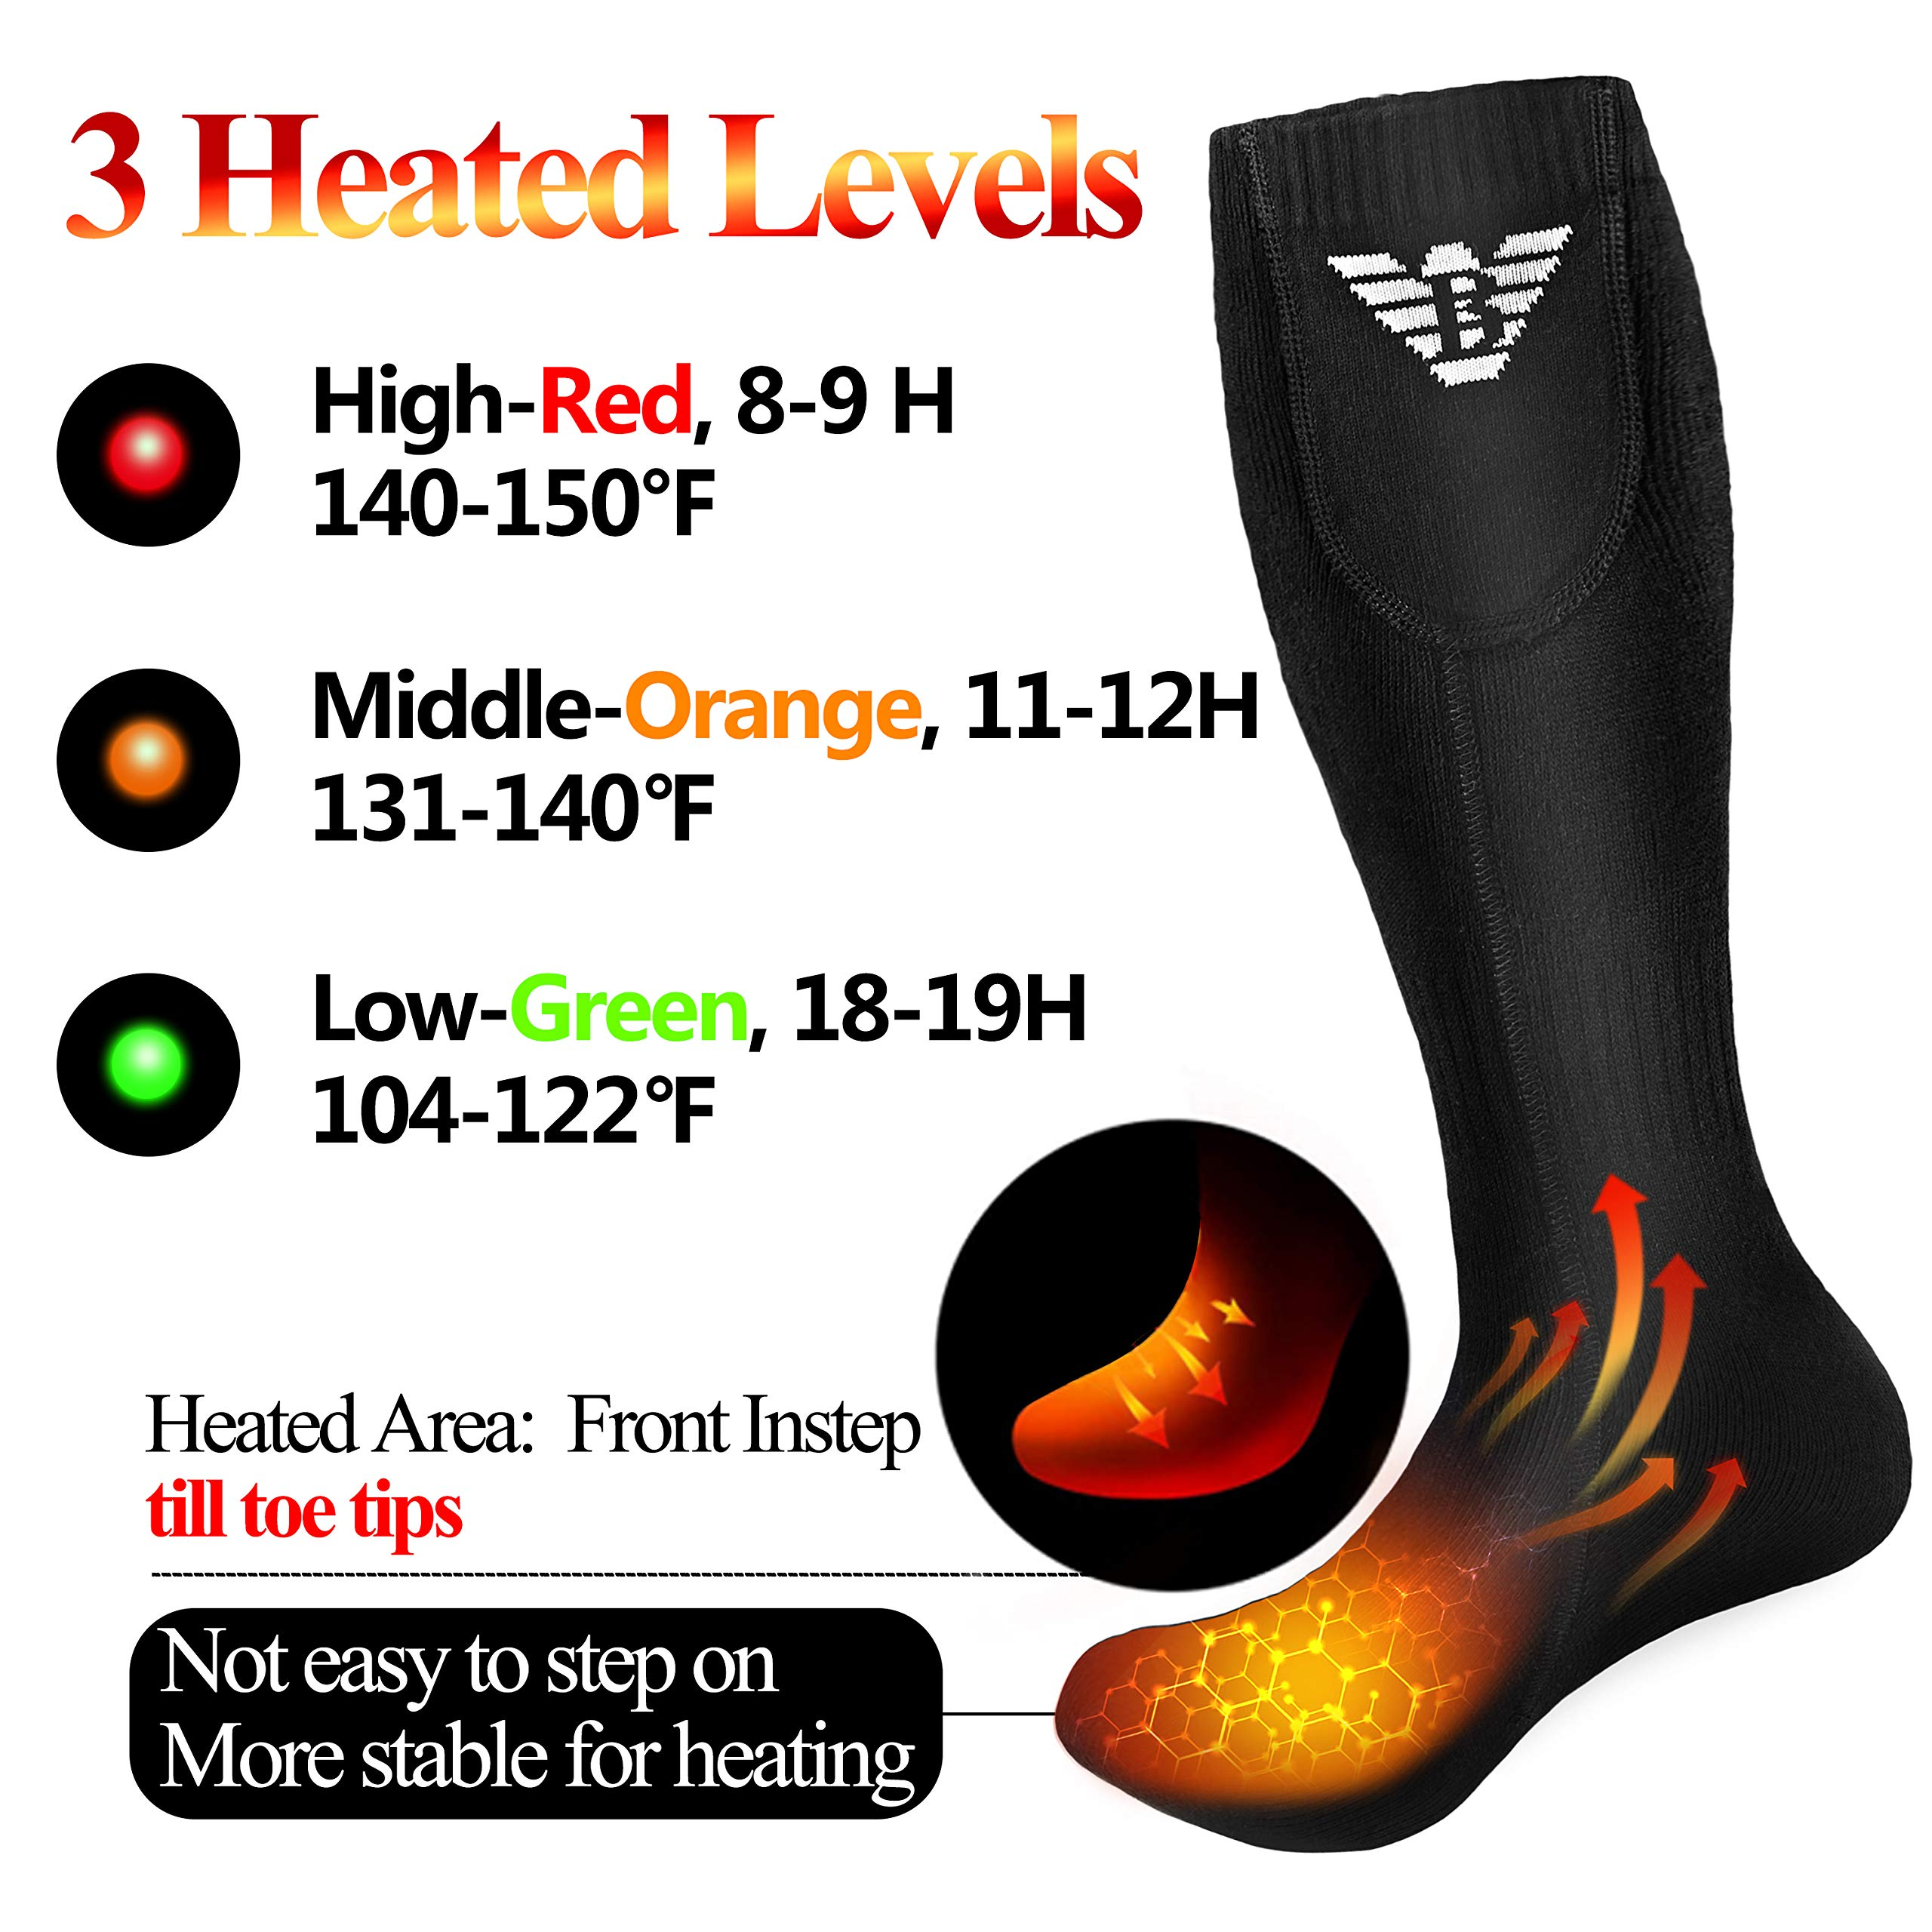 Heated Socks for Men Women - Electric Socks Rechargeable, Thermal Battery Heating Socks Winter Outdoor Motorcycle Golf Hunting Skiing